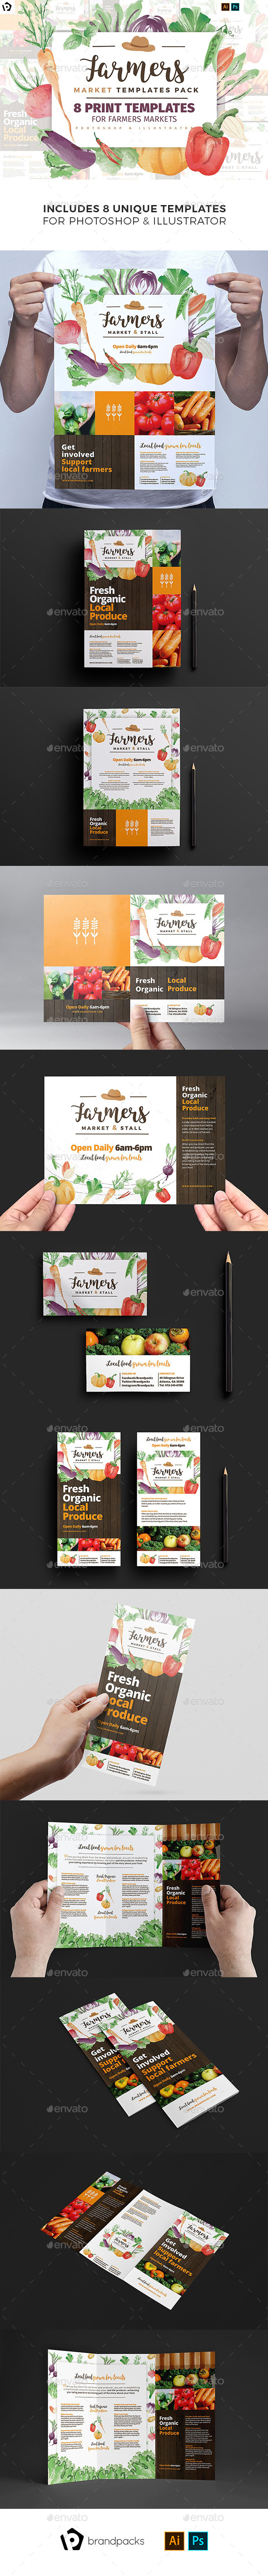 Farmers Market Templates Pack - Commerce Flyers